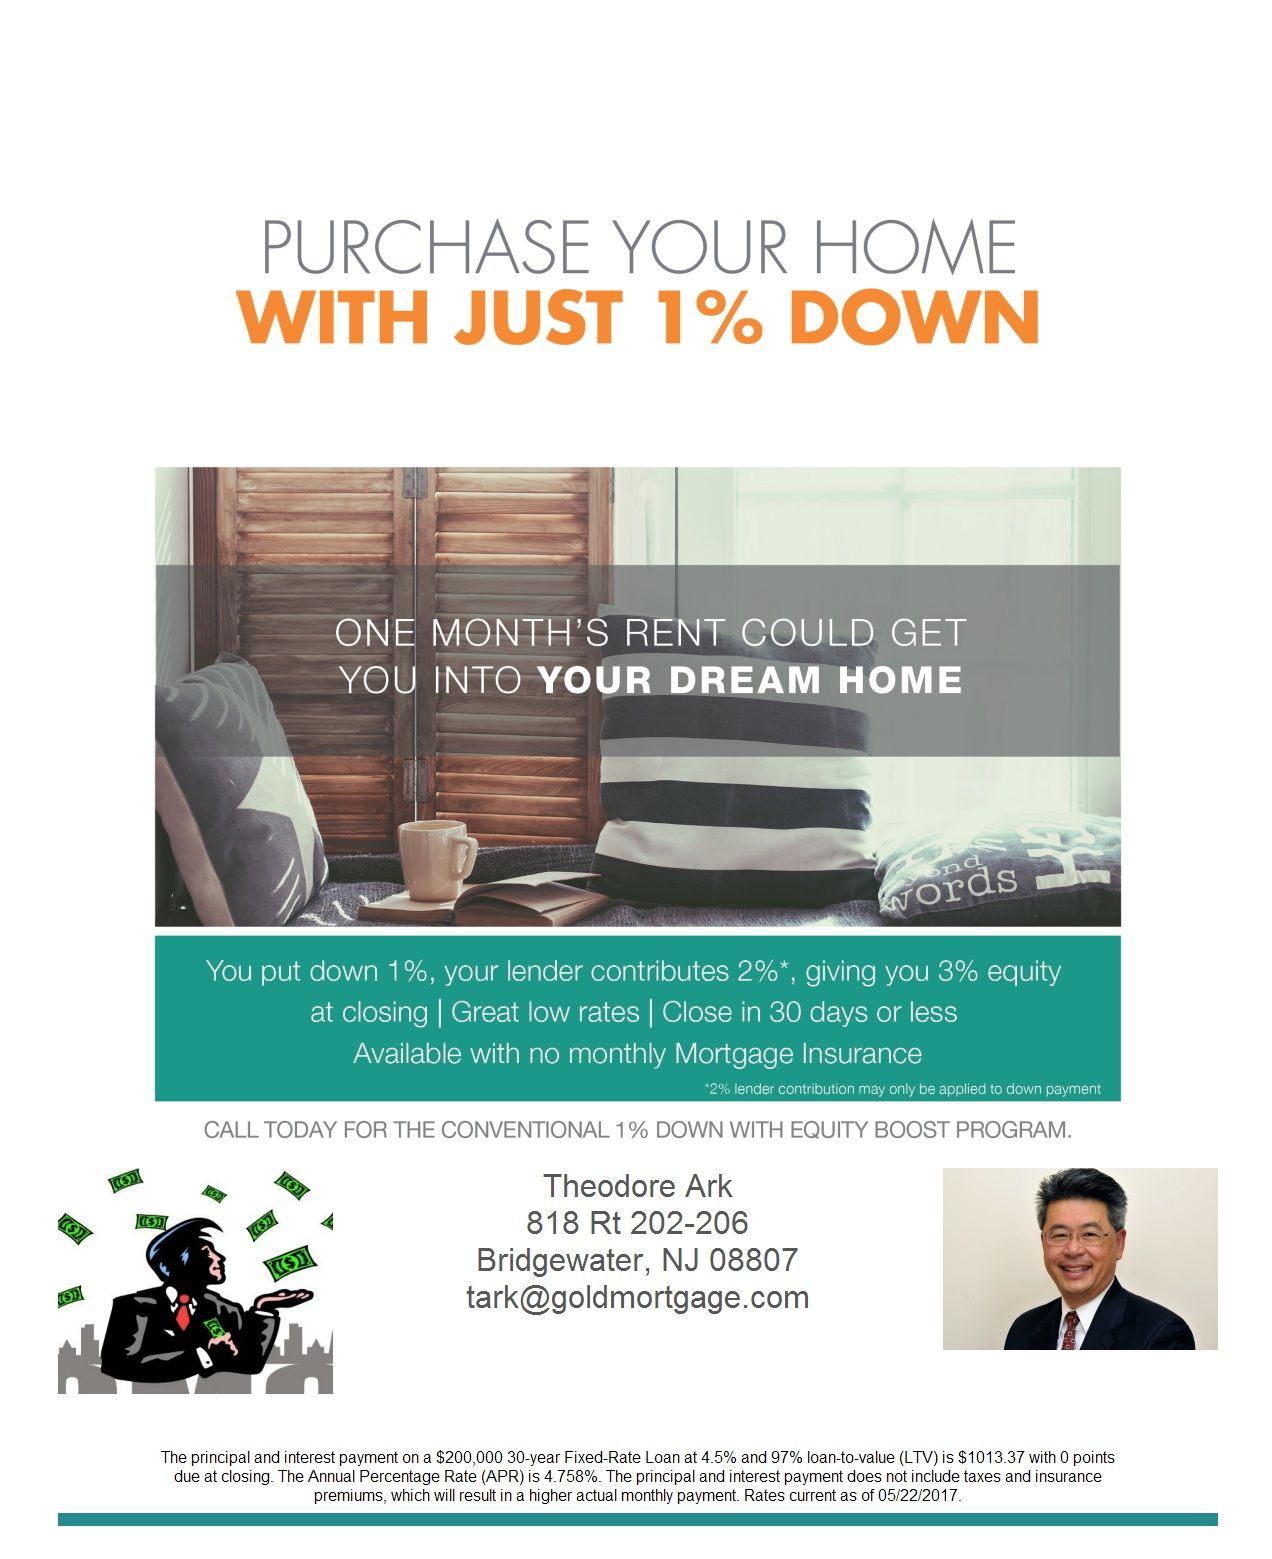 Fha Has A 1 Down Payment Mortgage Program In New Jersey And New York Tel 800 327 0123 Licens Top Mortgage Lenders Mortgage Lenders Mortgage Loan Originator